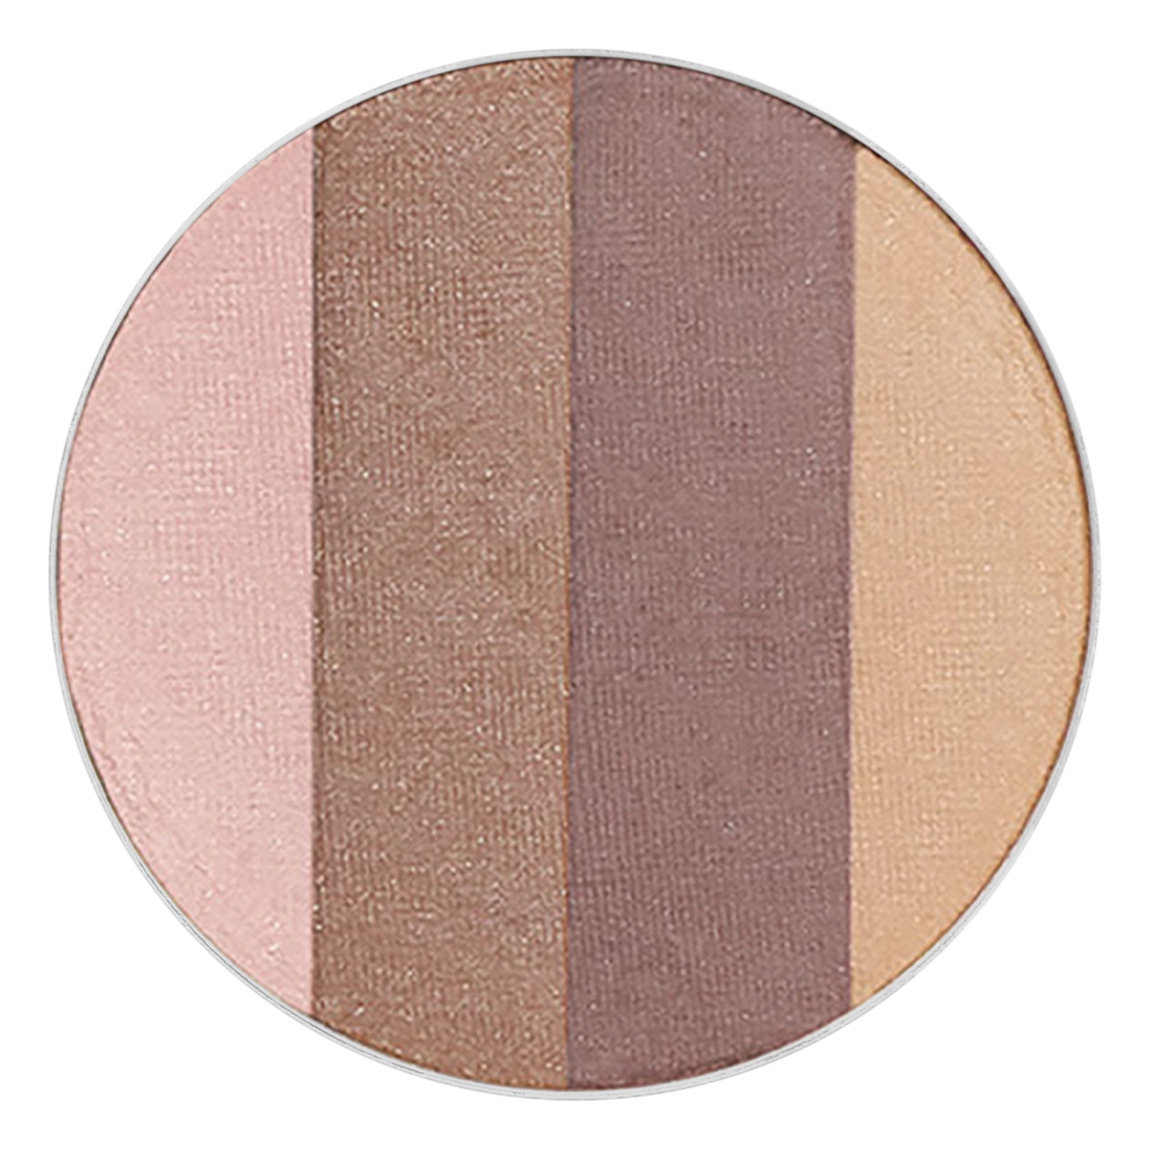 Kjaer Weis The Quadrant Refill Wanderer alternative view 1 - product swatch.